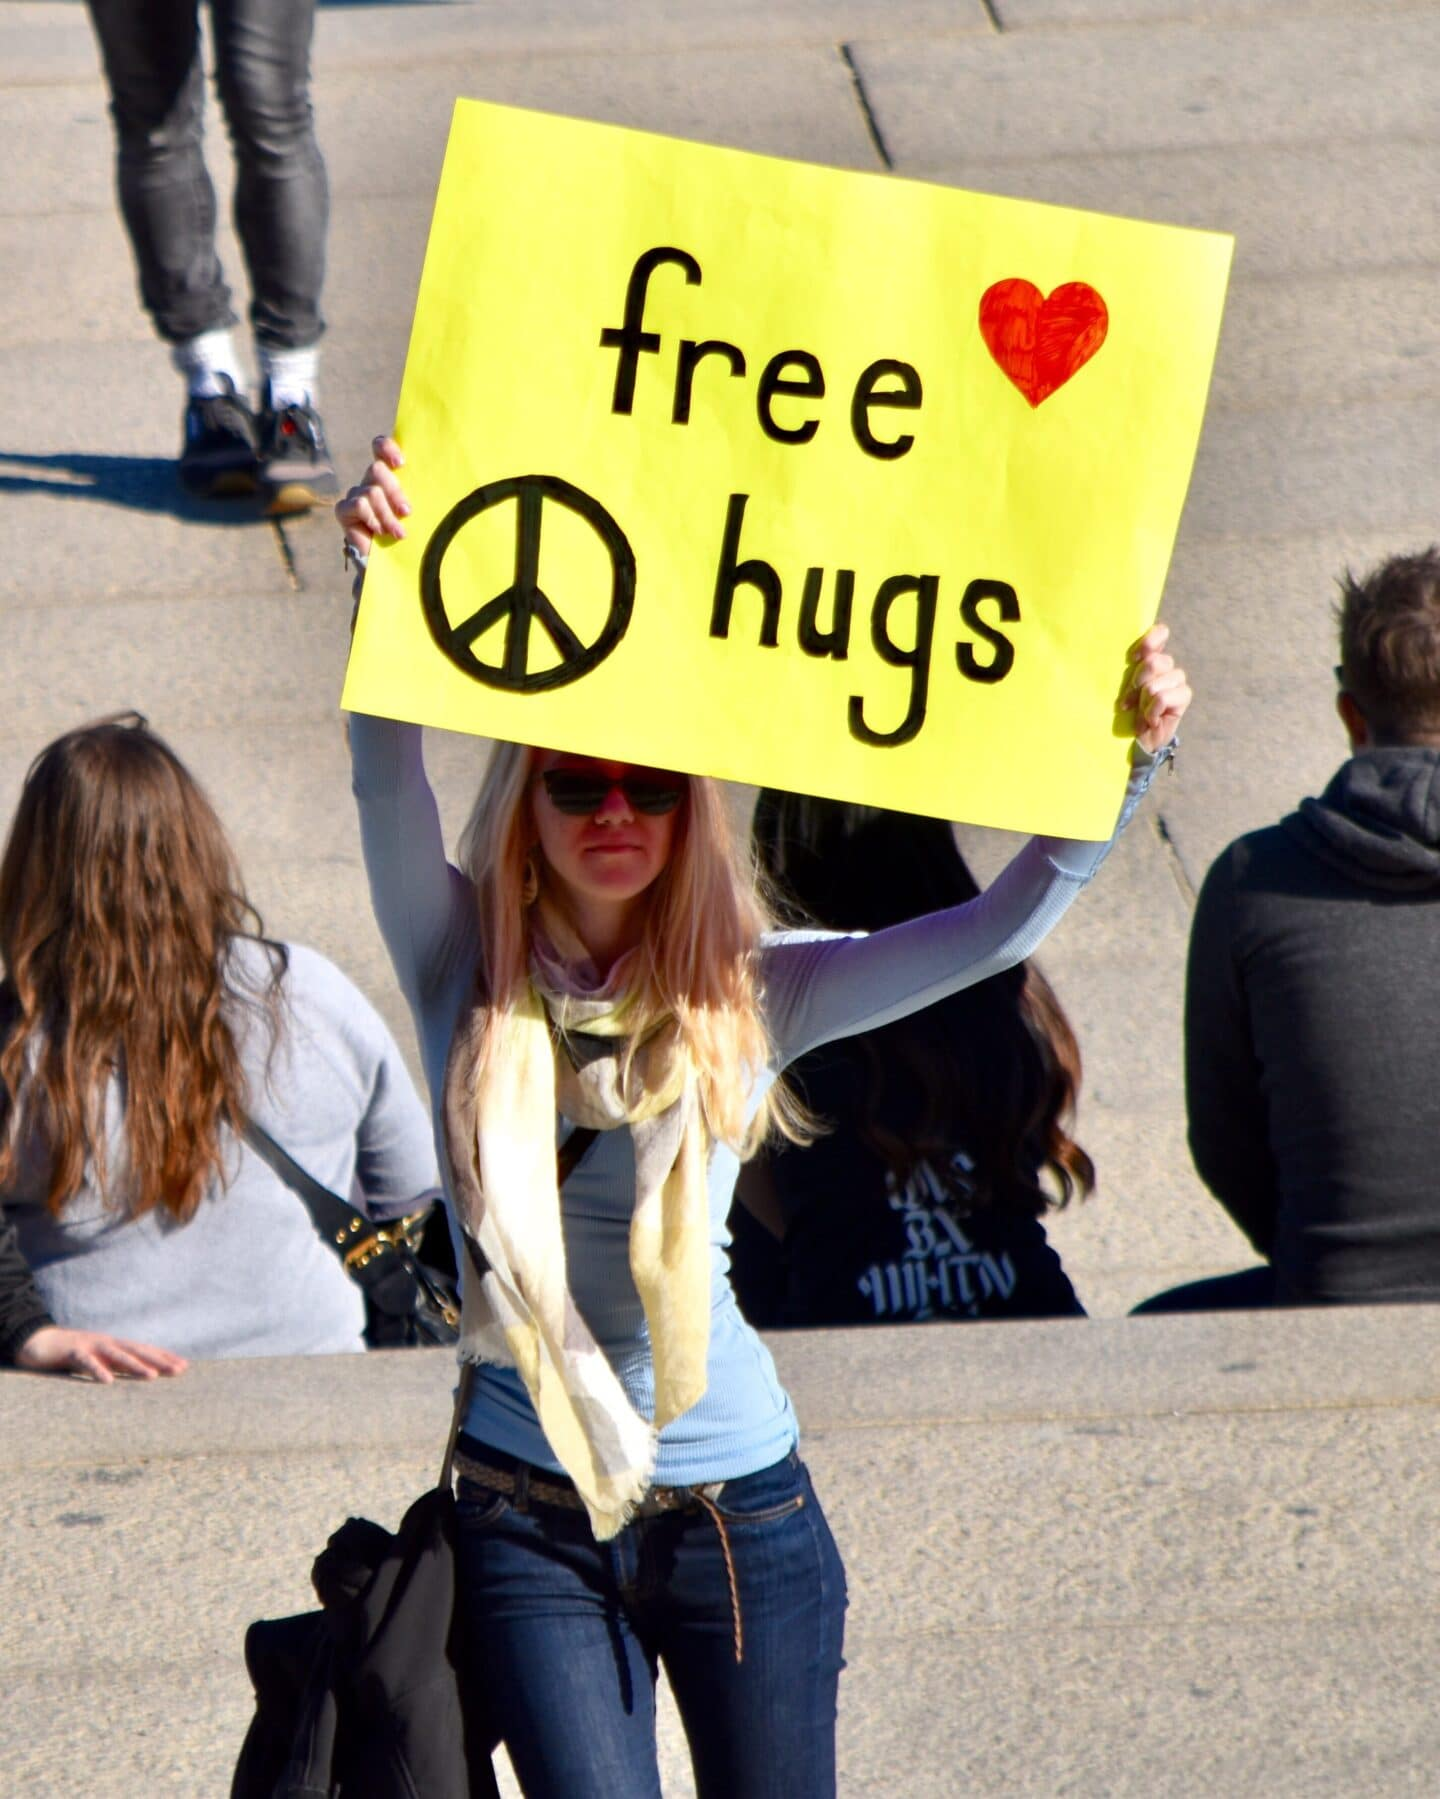 Give strangers free hugs with this fun bucket list idea!